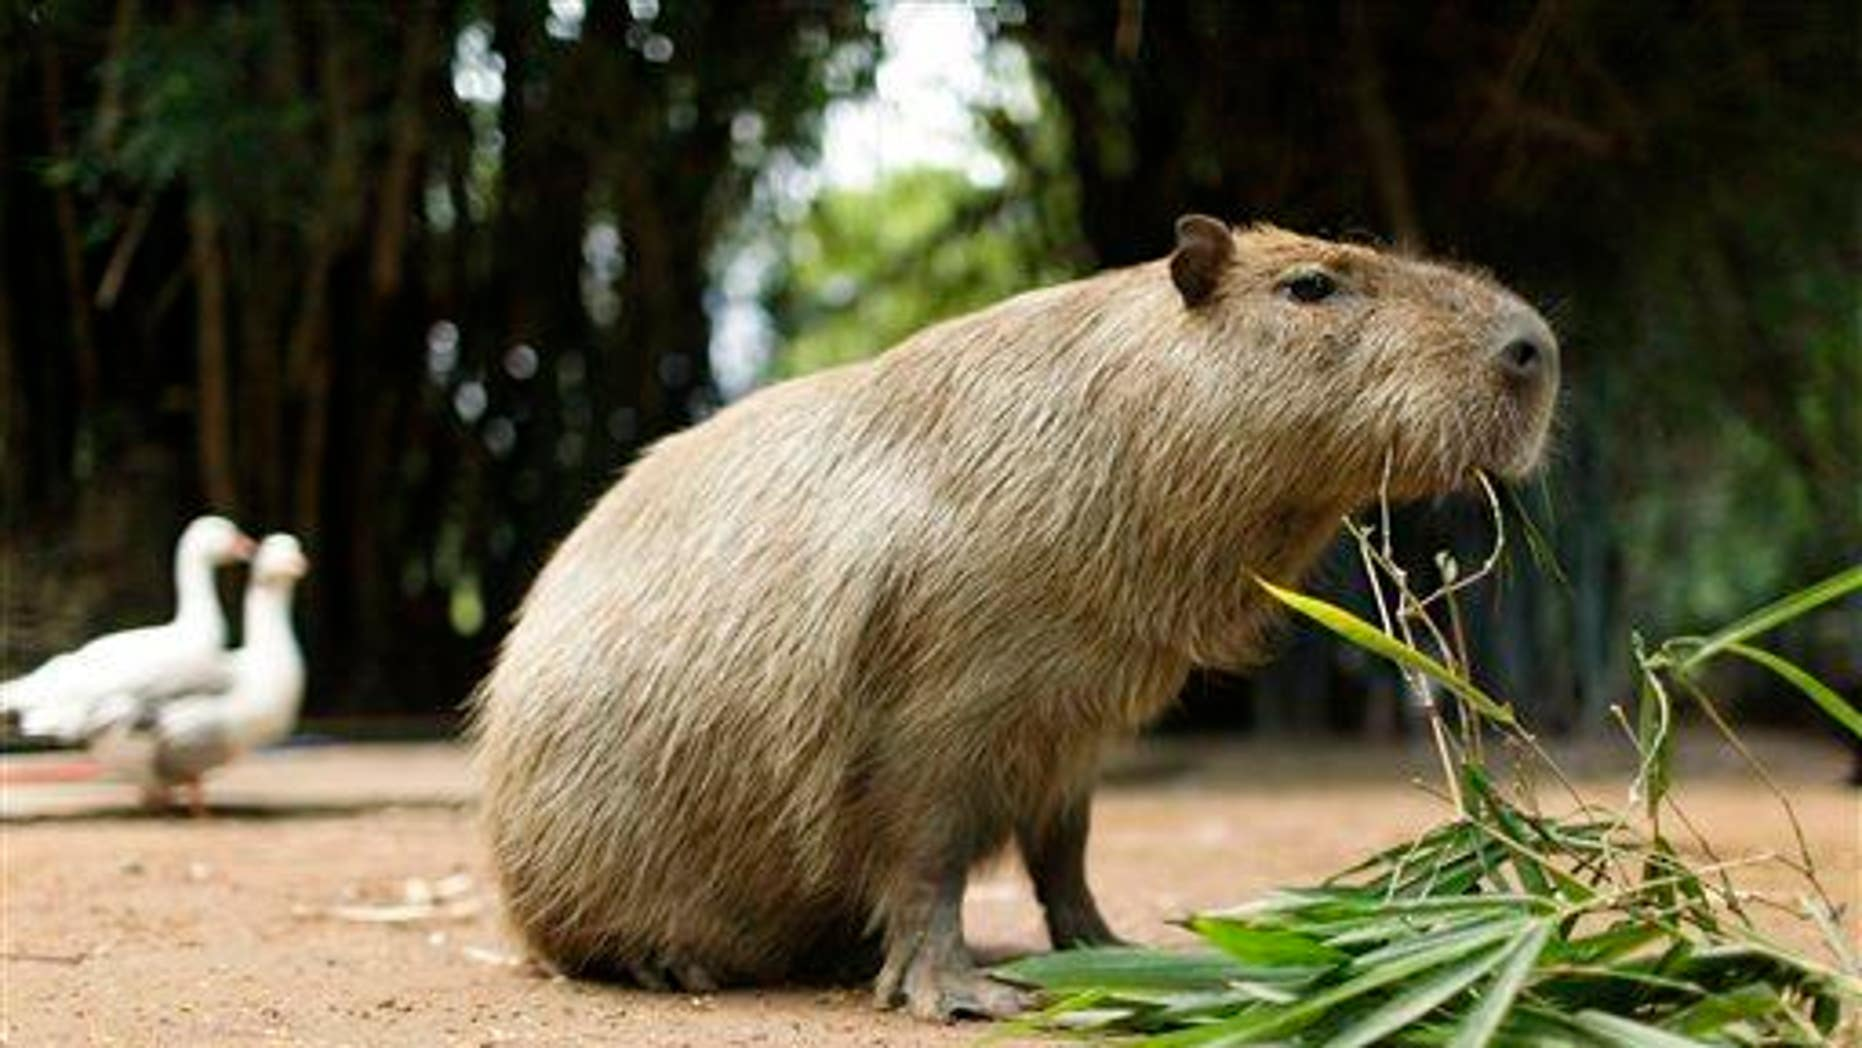 A capybara eats a plant at a zoo in Asuncion, Paraguay, on Feb. 18, 2011.